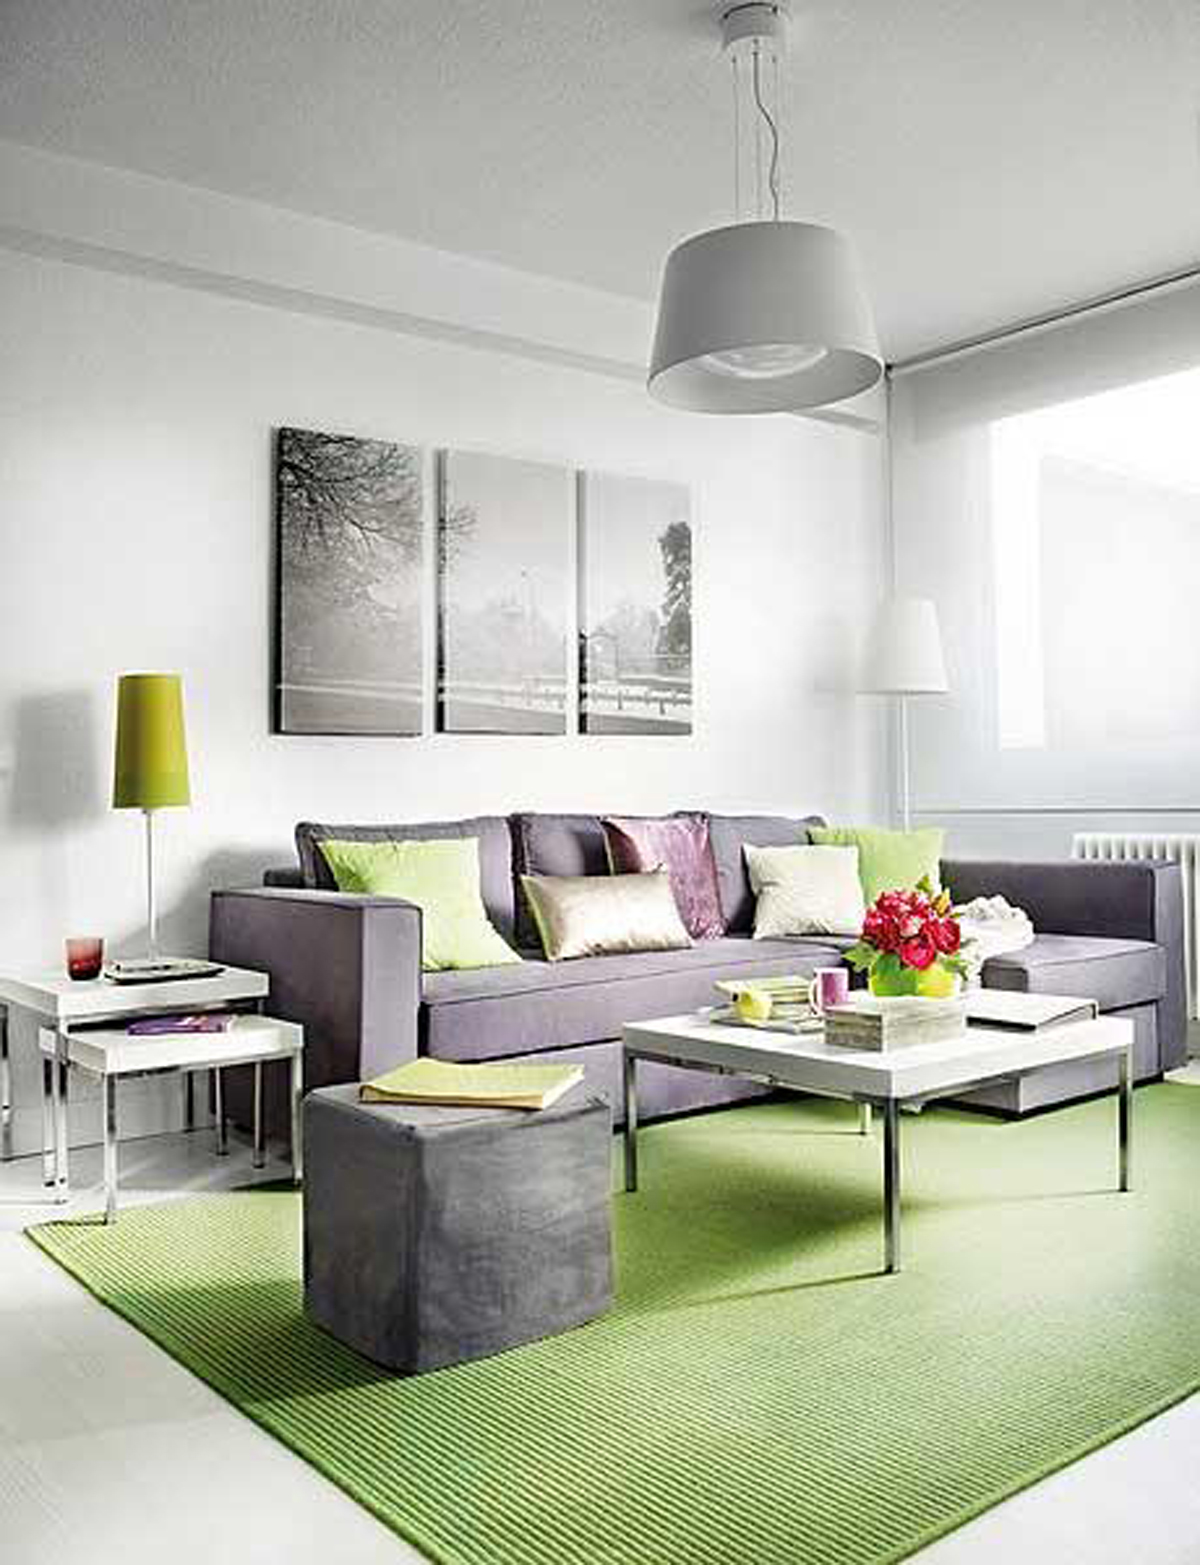 decoration ideas for living room in apartments couches 21 cozy apartment decorating small house kirlittle